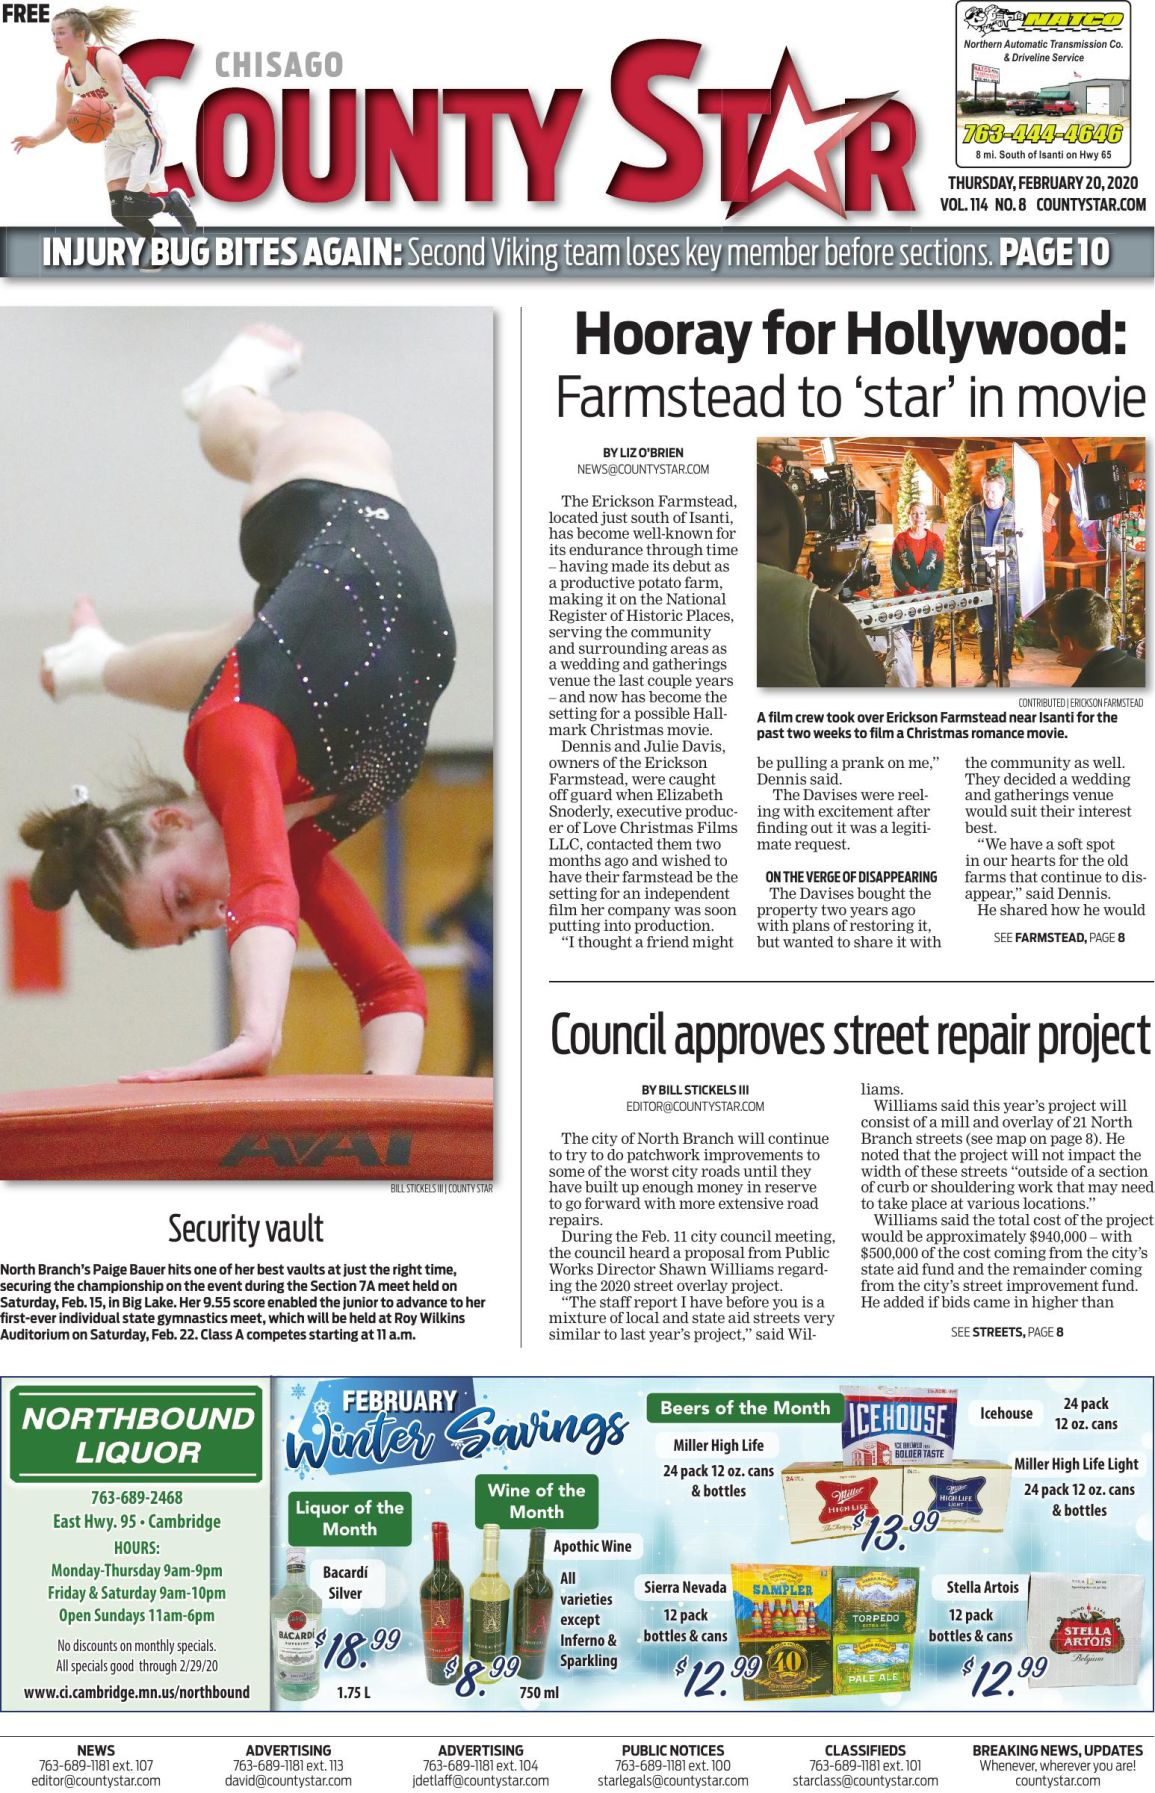 Chisago County Star February 20, 2020 e-edition